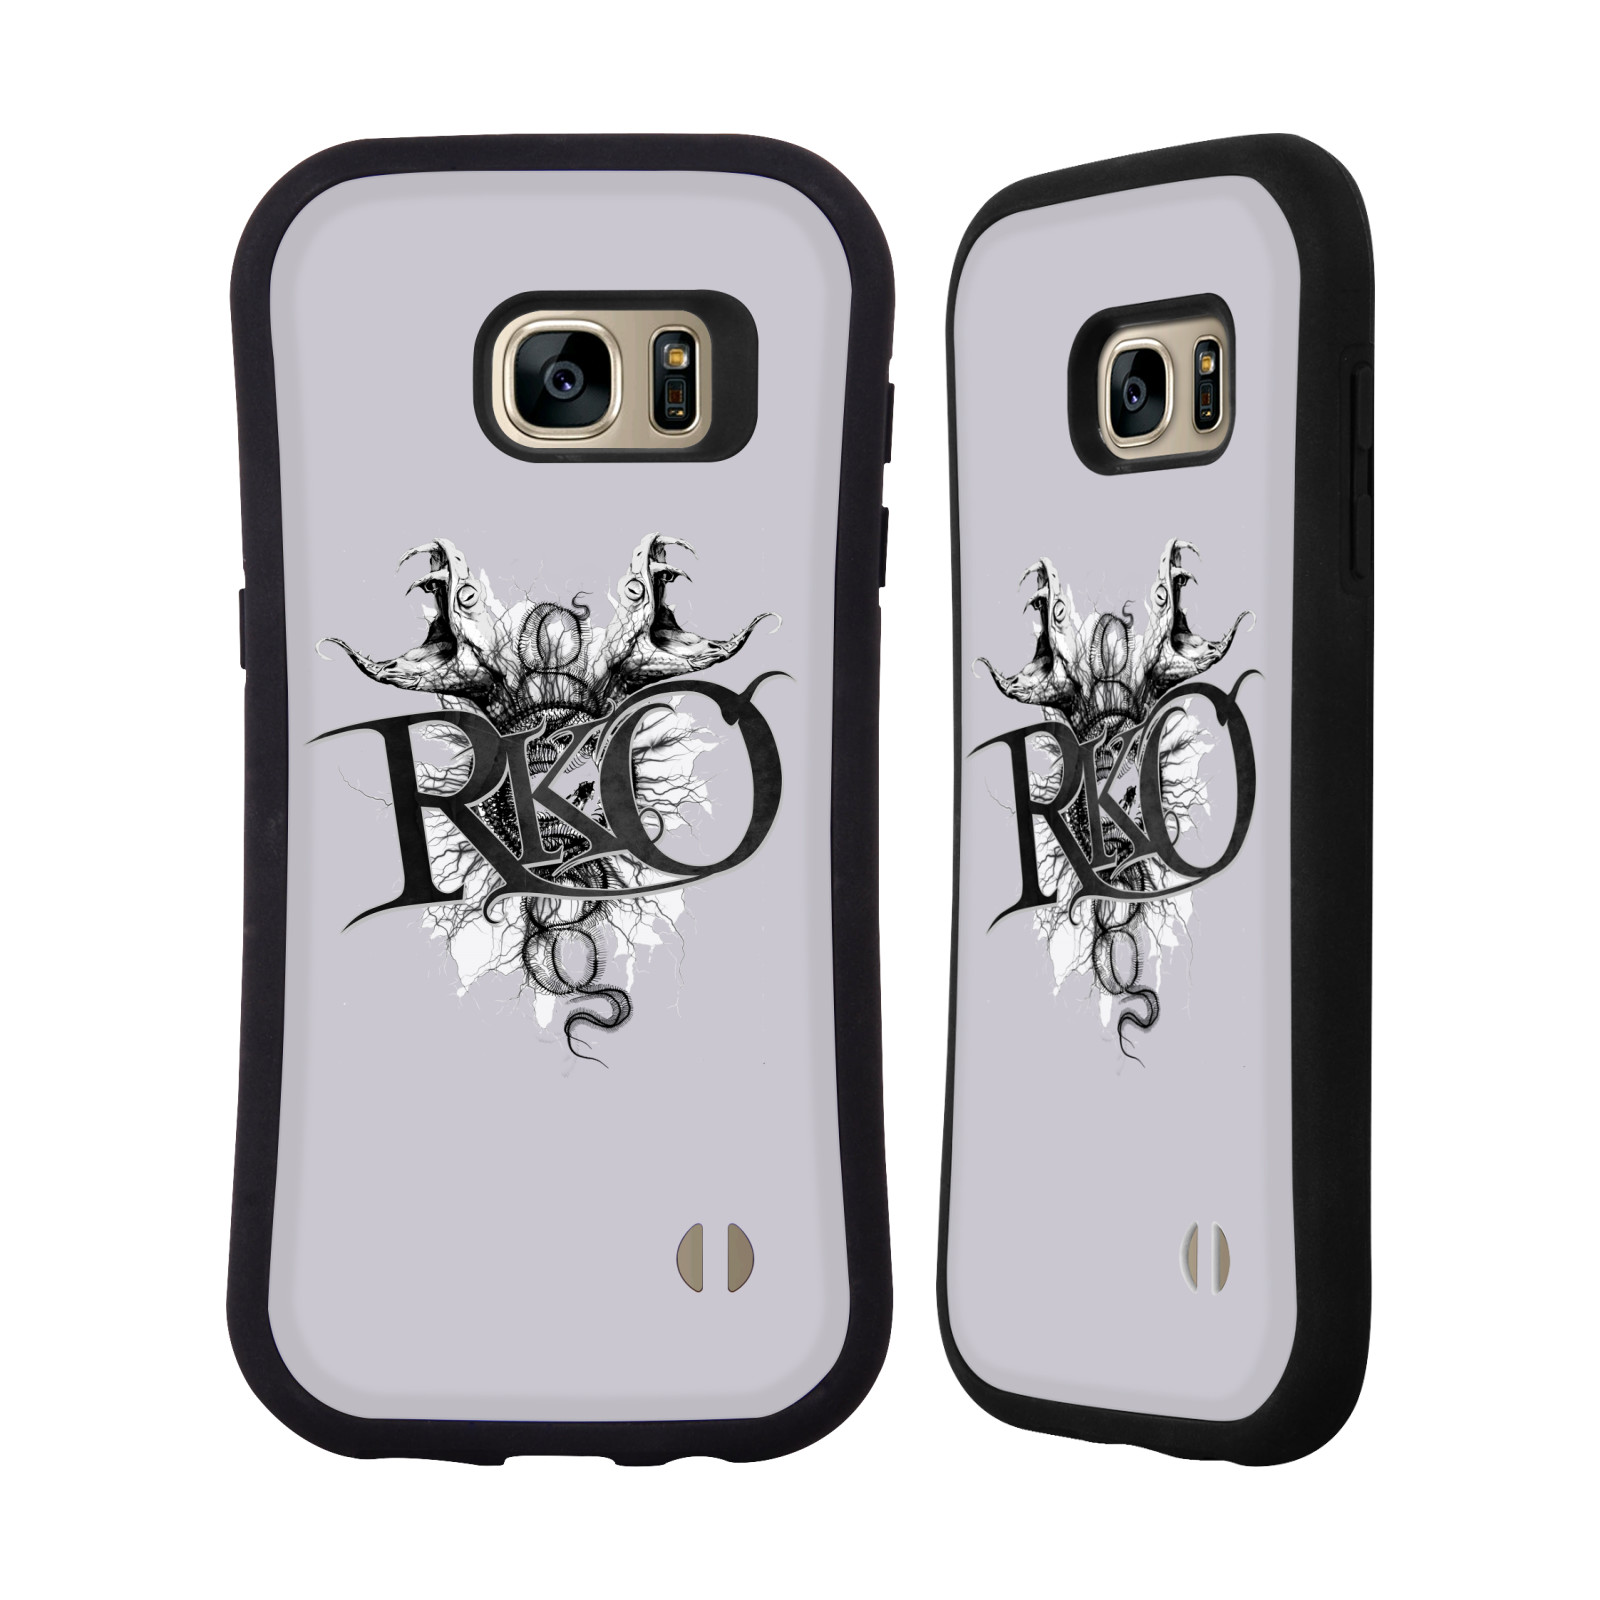 OFFICIAL WWE RANDY ORTON HYBRID CASE FOR SAMSUNG PHONES